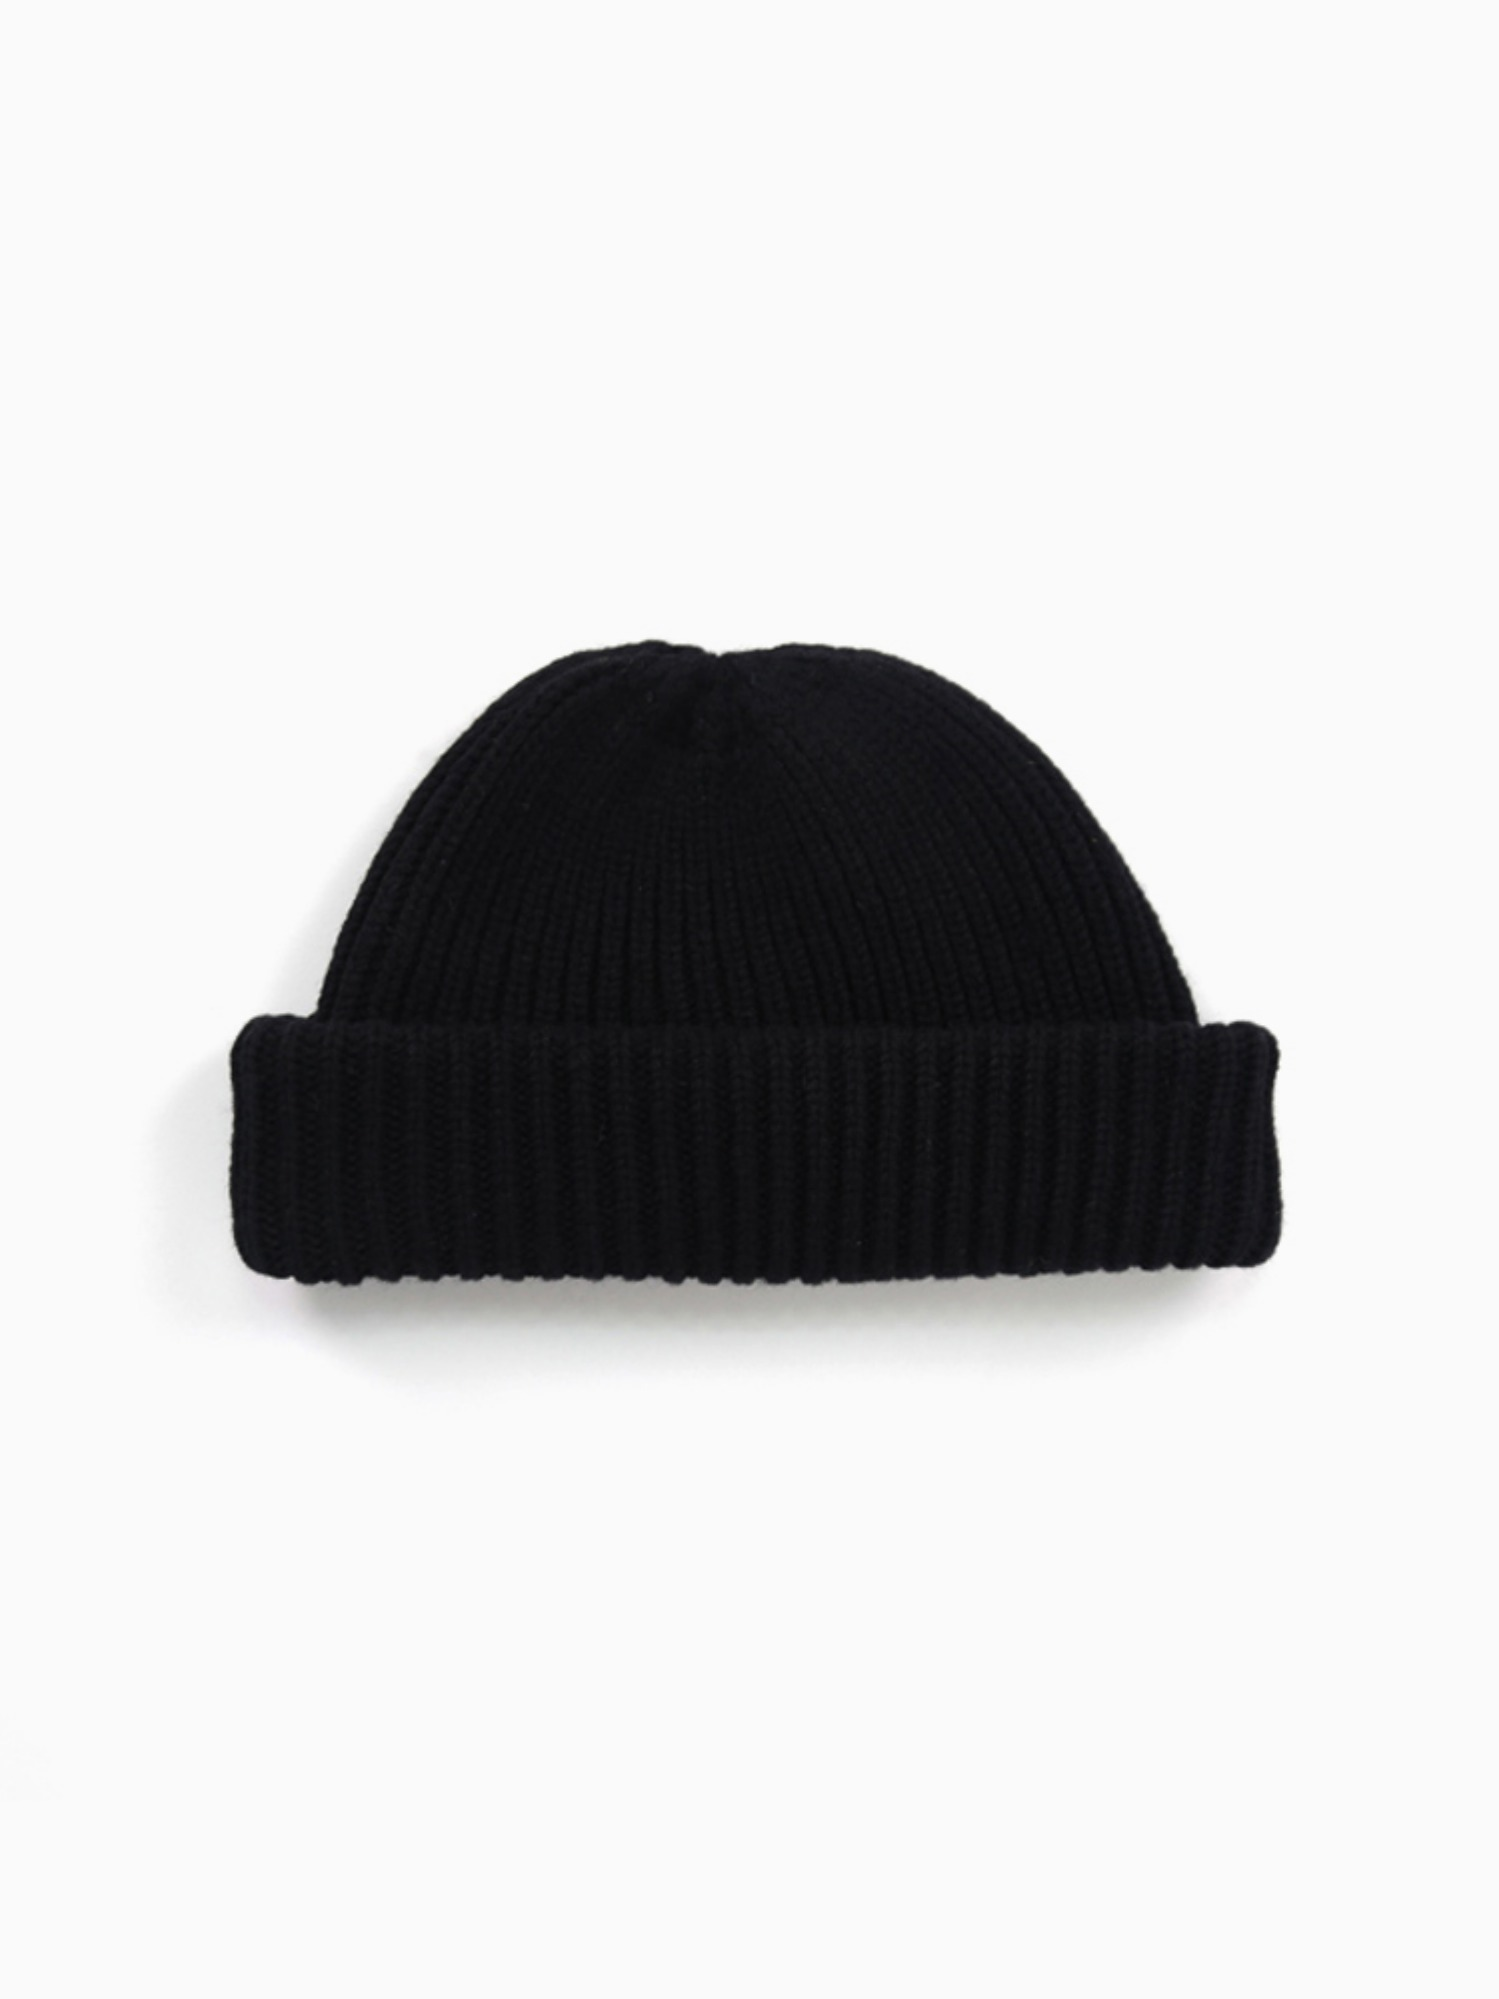 [inch_inch_beanie] 재입고 Lambs-wool black : season2